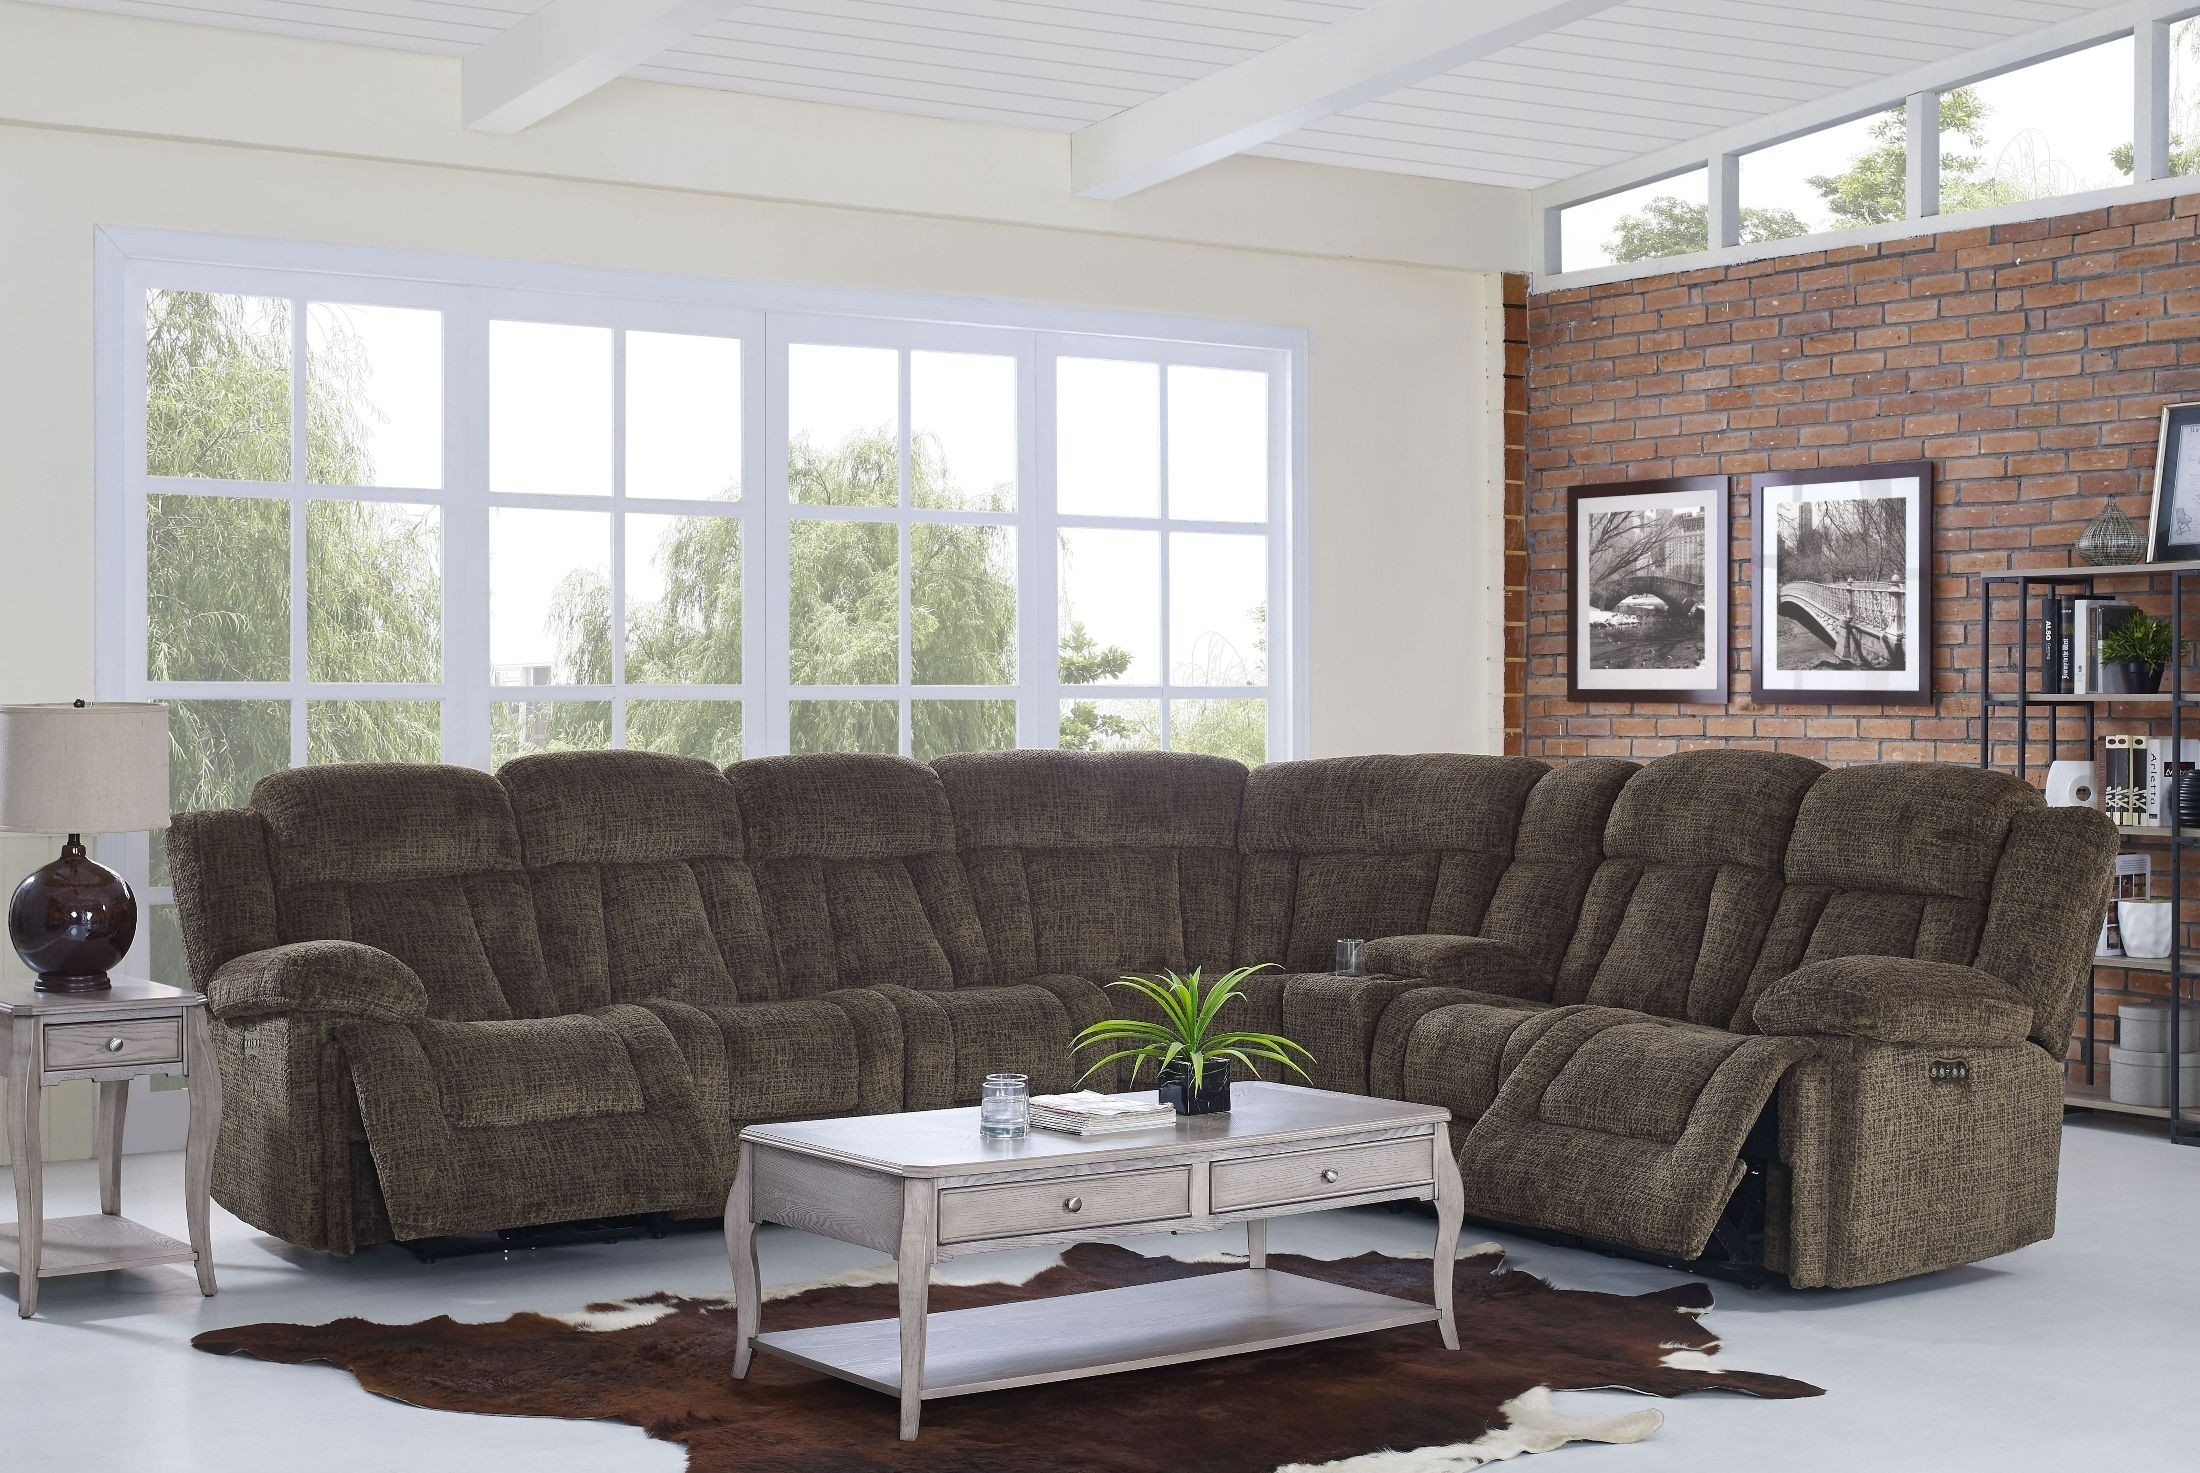 Laura Chocolate Reclining Sectional From New Classic | Coleman Furniture within Turdur 3 Piece Sectionals With Laf Loveseat (Image 13 of 30)